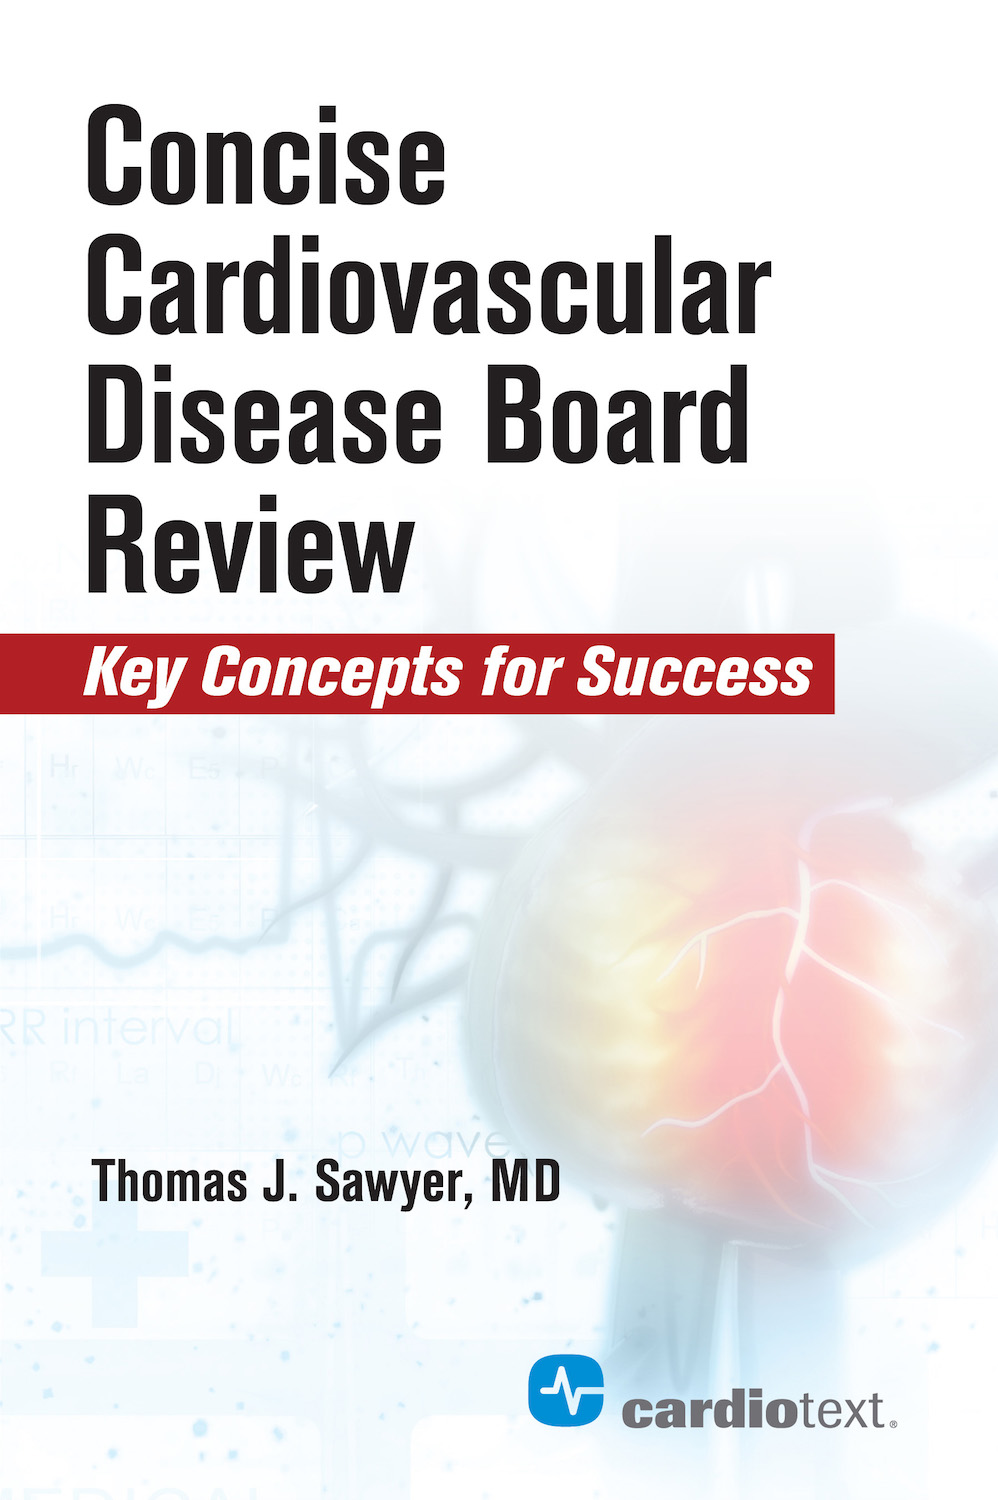 Concise Cardiovascular Disease Board Review - Sawyer 9781942909231 —  Cardiotext Publishing - Cardiology Books and eBooks